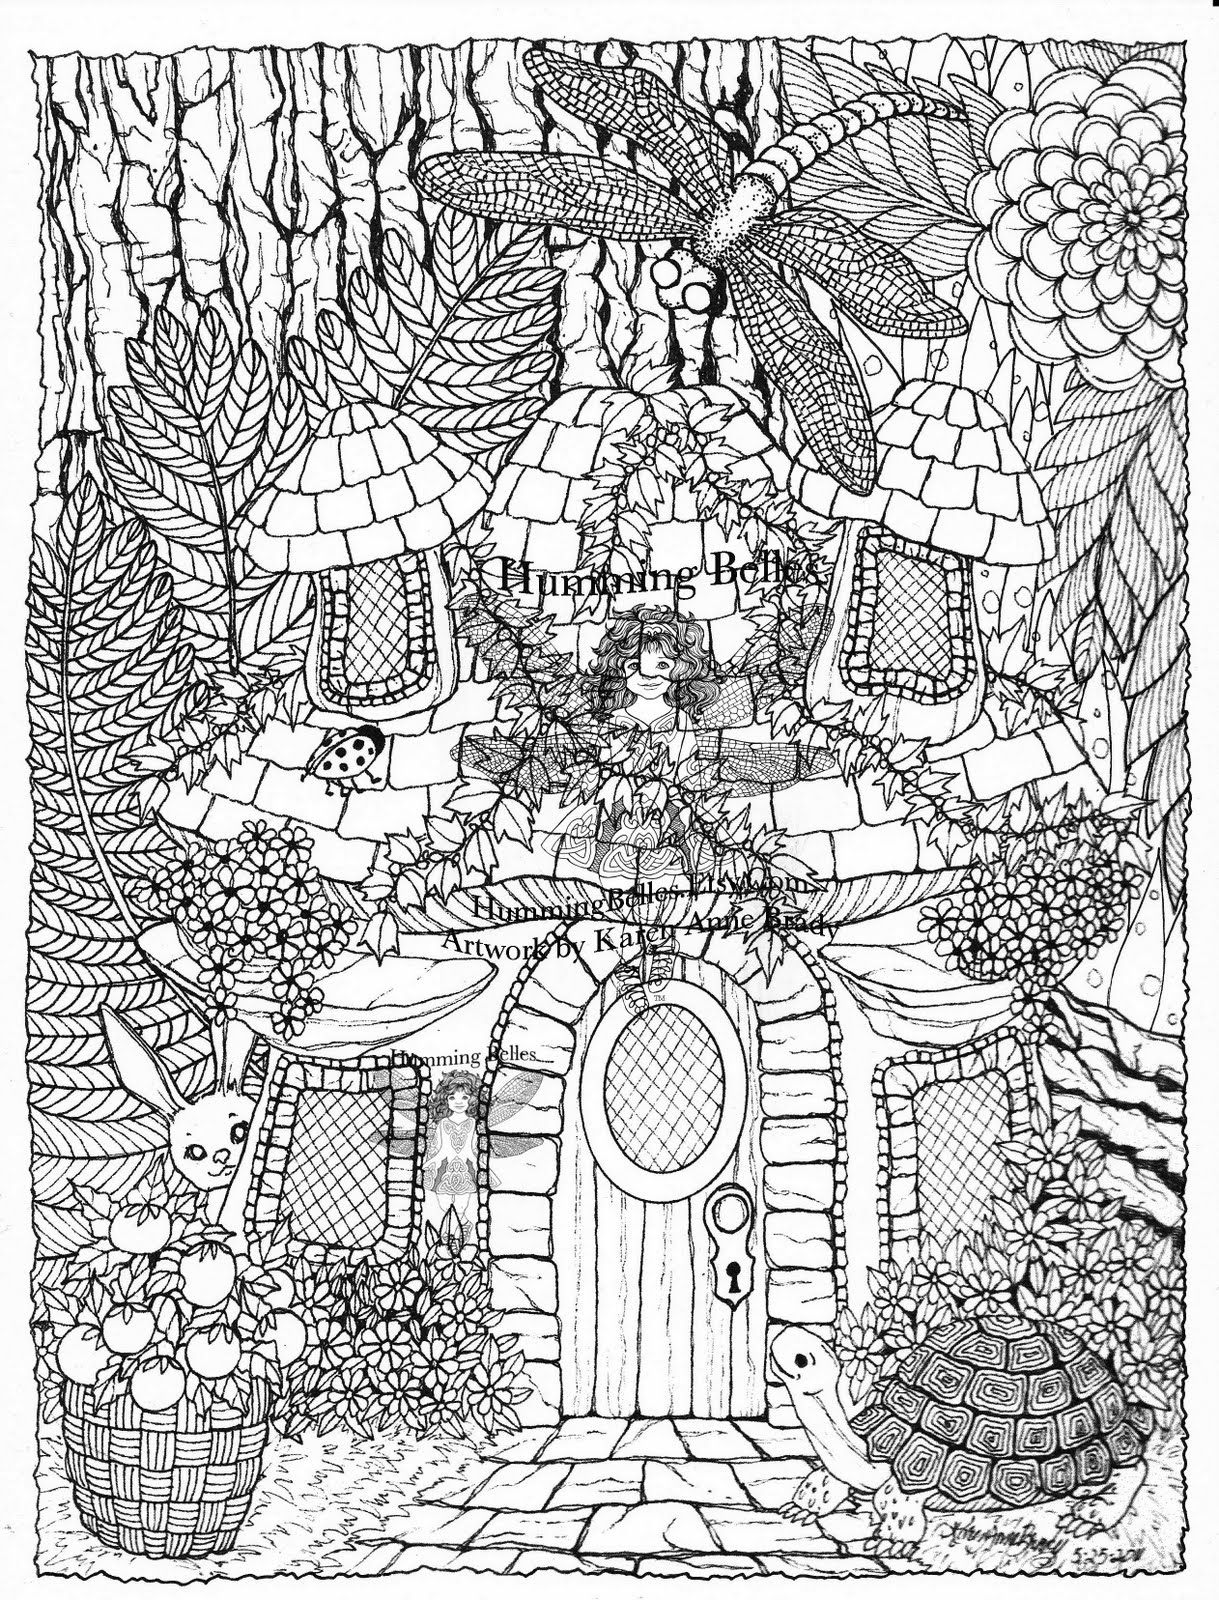 difficult coloring pages for teenagers coloring pages for teenagers difficult at getcoloringscom pages teenagers coloring difficult for